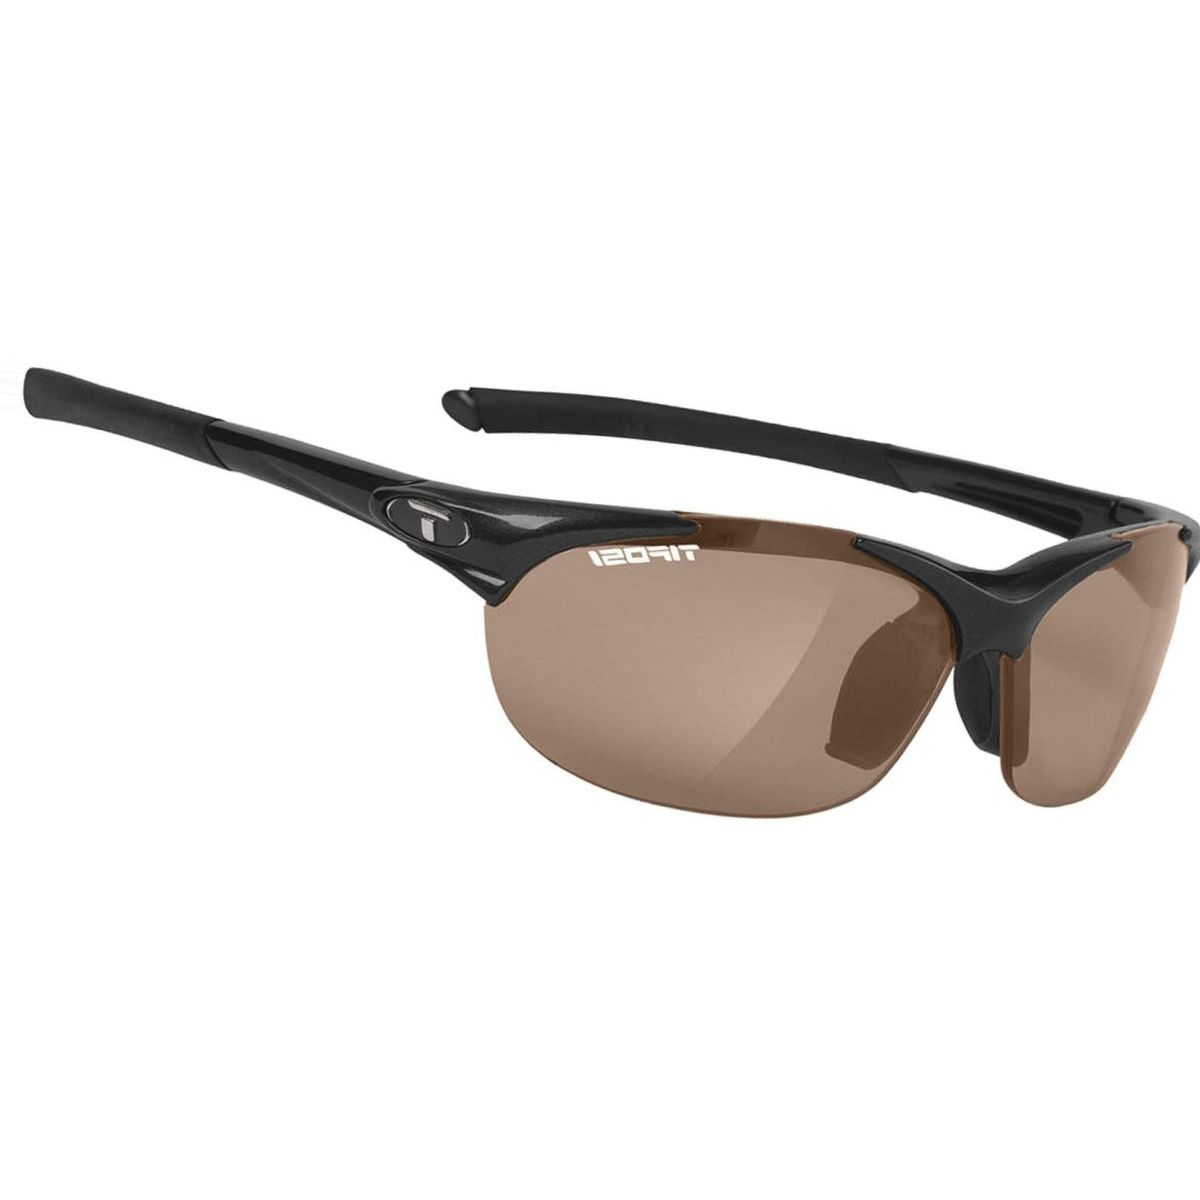 Tifosi Optics Wisp Polarized Sunglasses - Women's